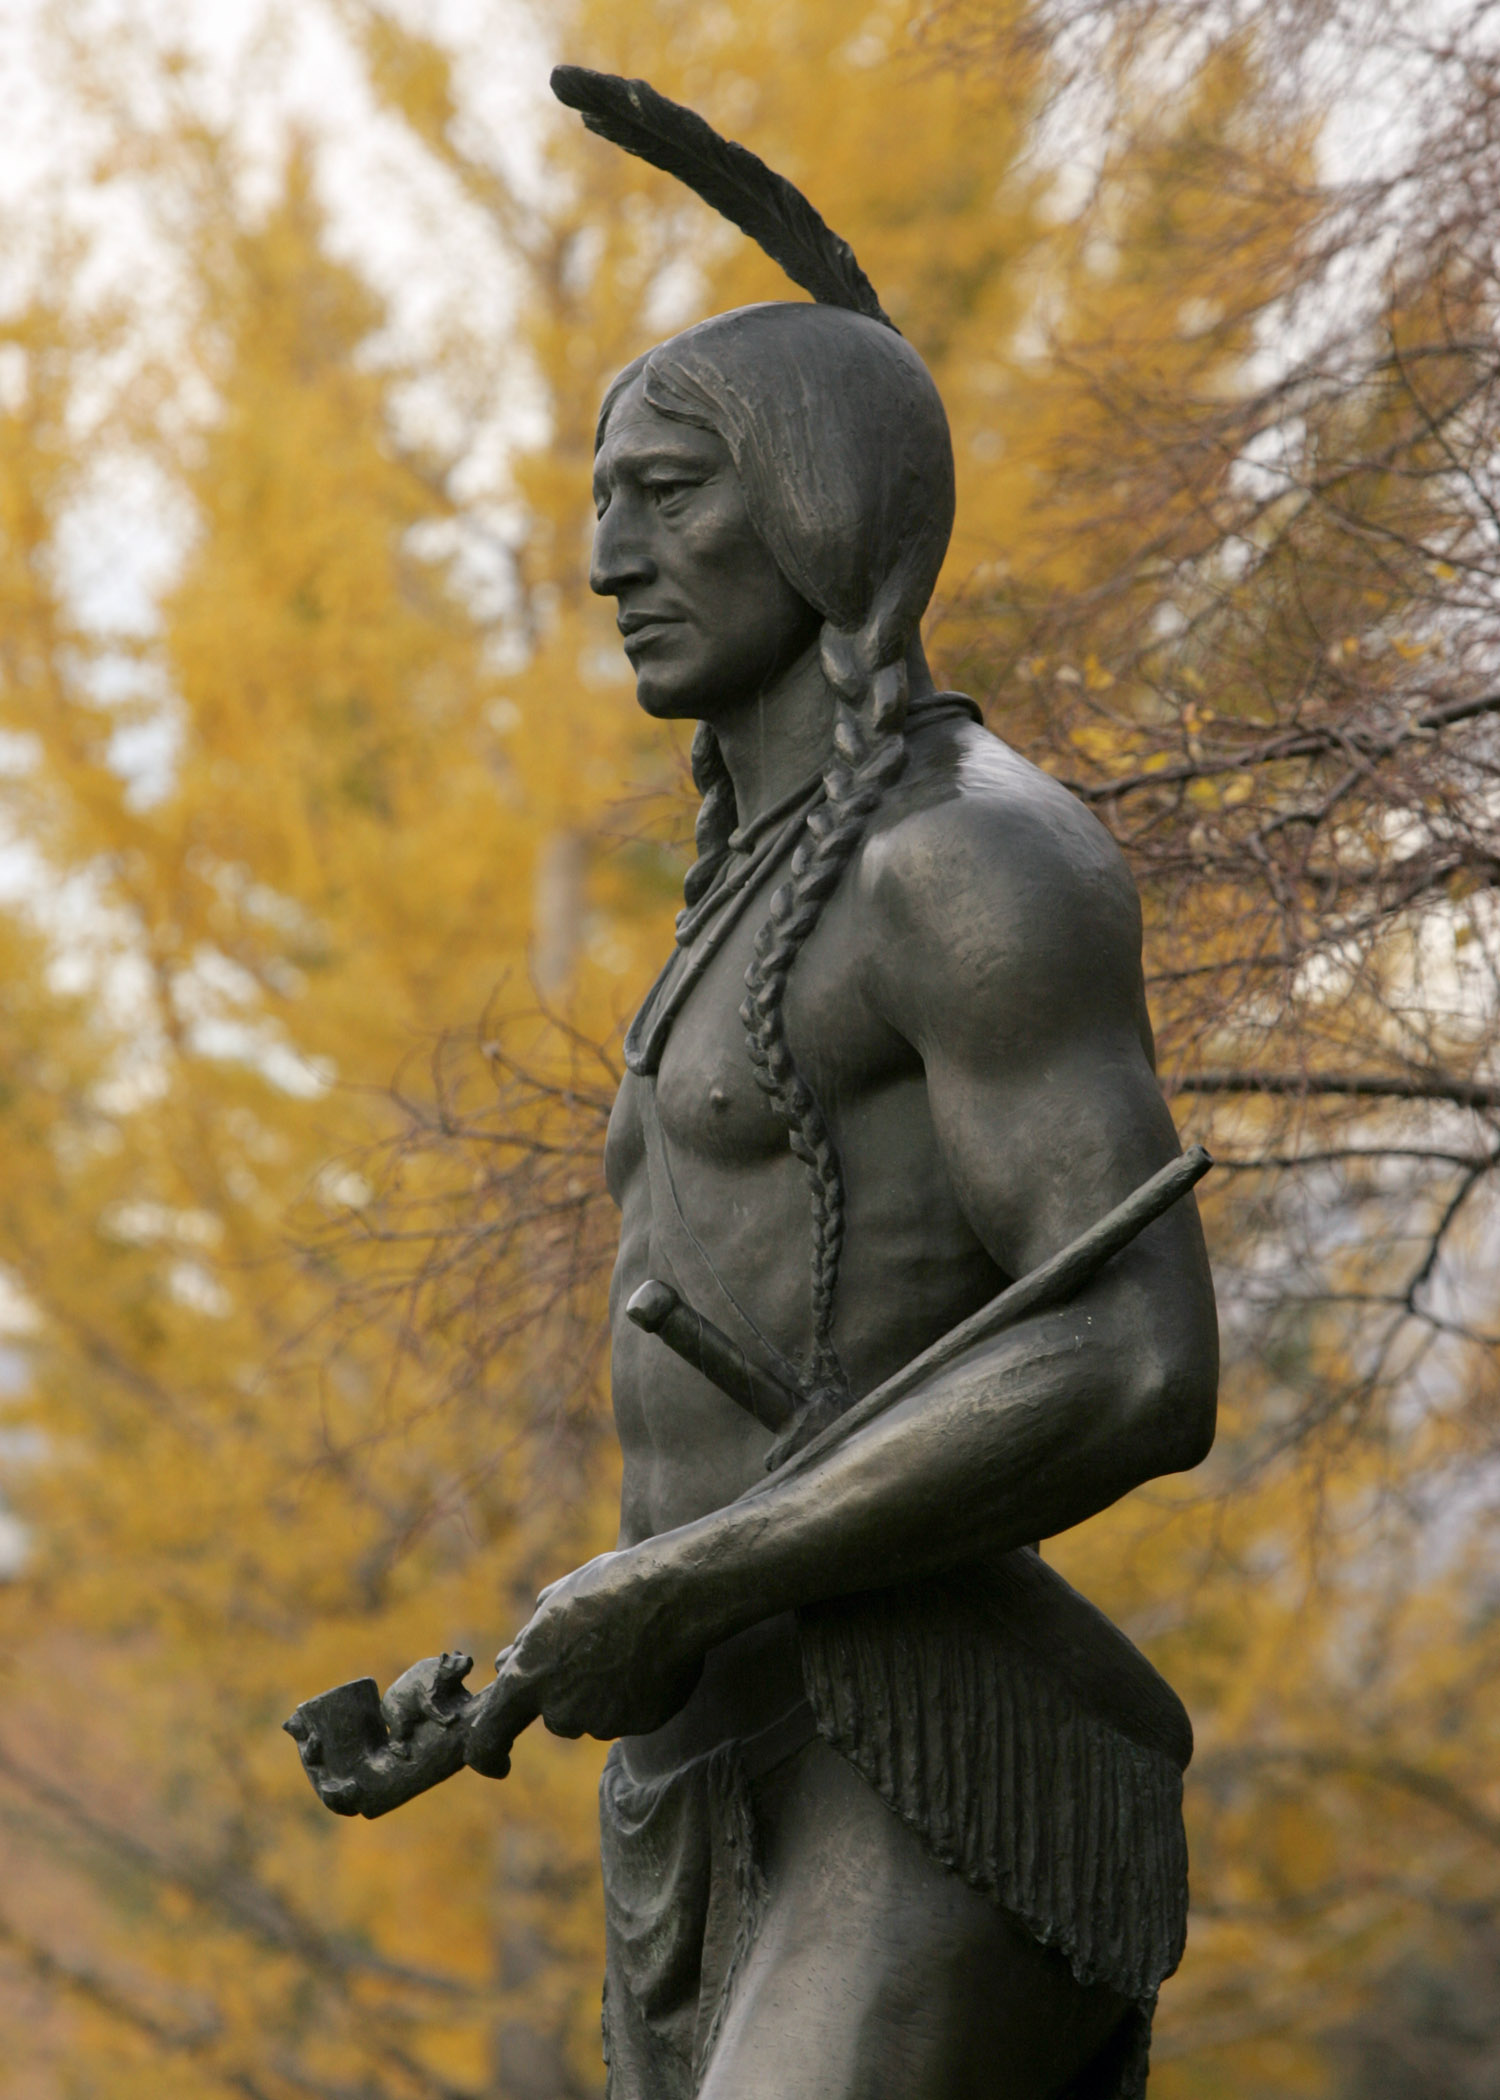 Massasoit emerges as one of the book's real (albeit complex) heroes.